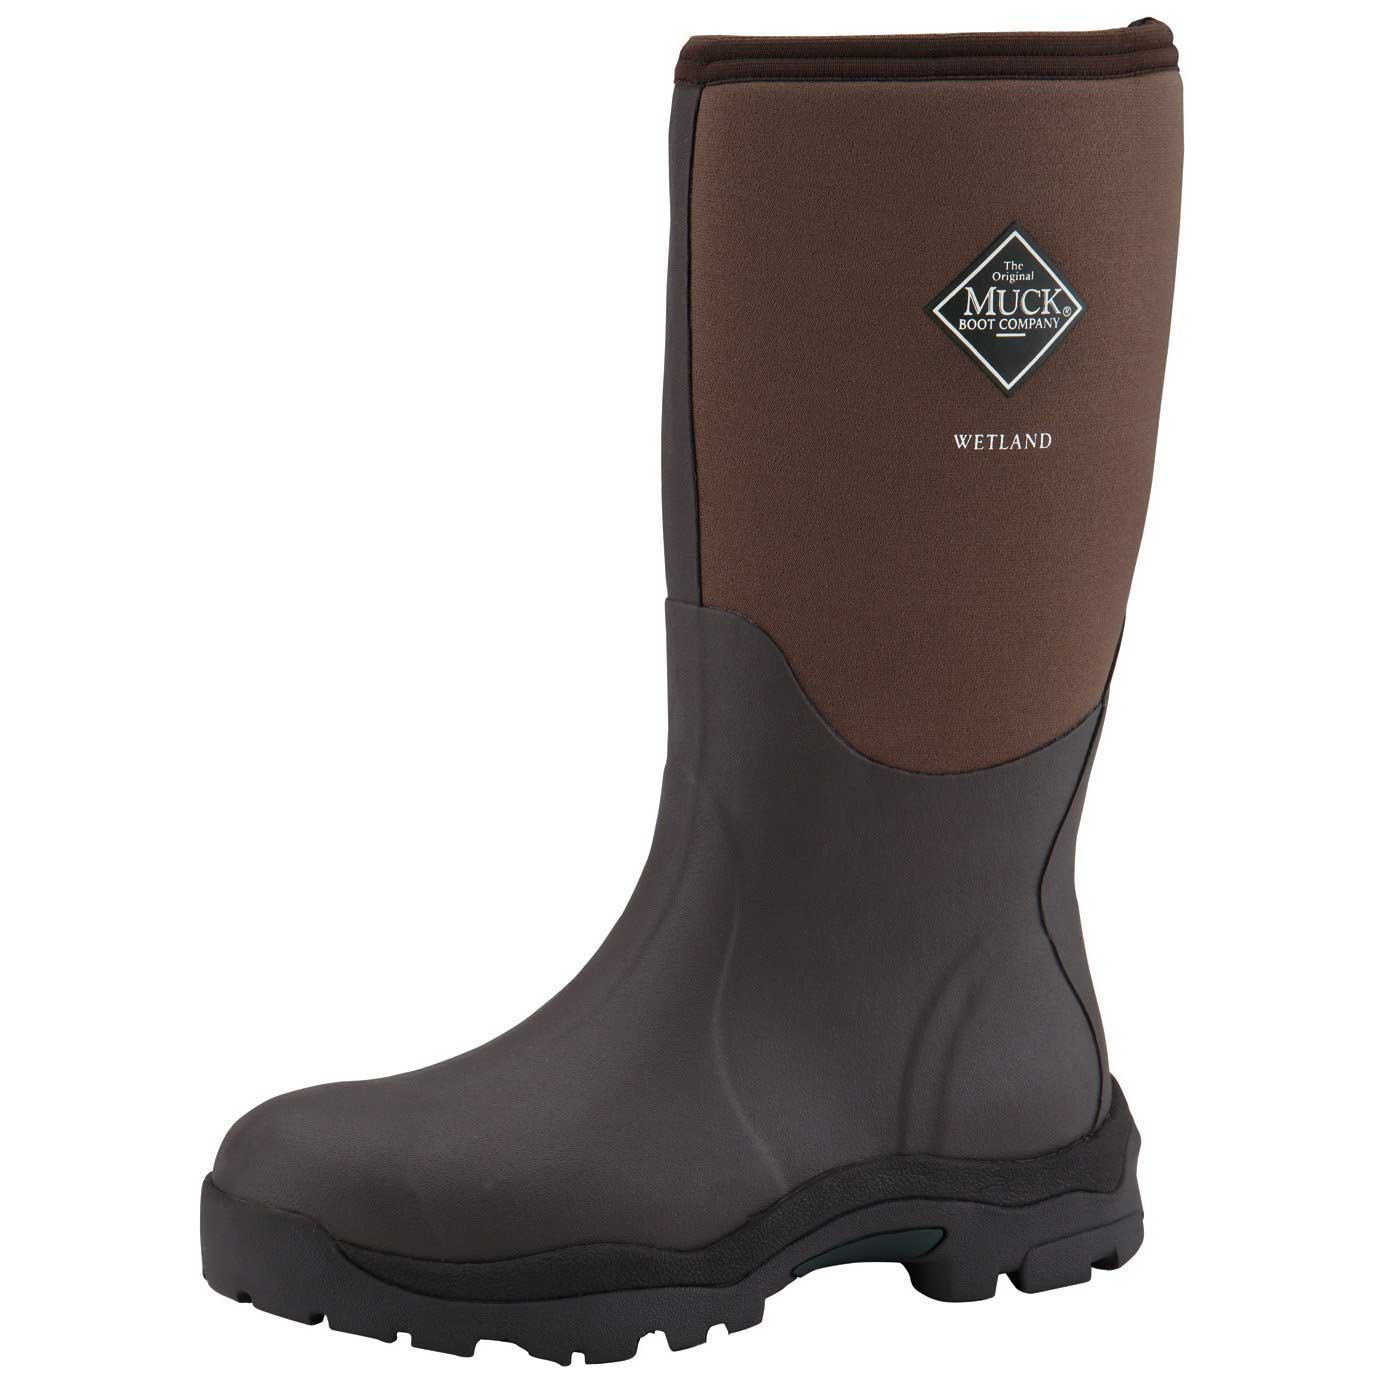 Muck Boots Womens Wetland Boot